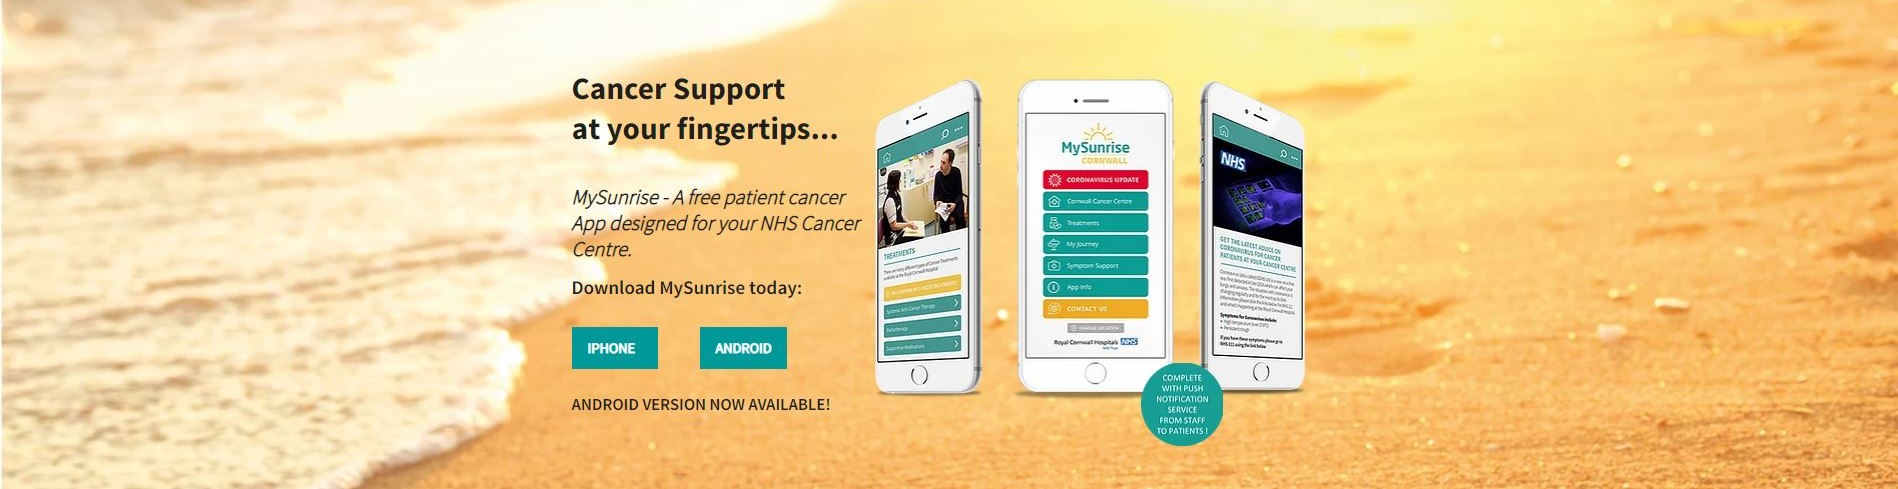 My Sunrise App:  A free patient cancer App designed for your NHS Cancer Centre, select the image to learn more.